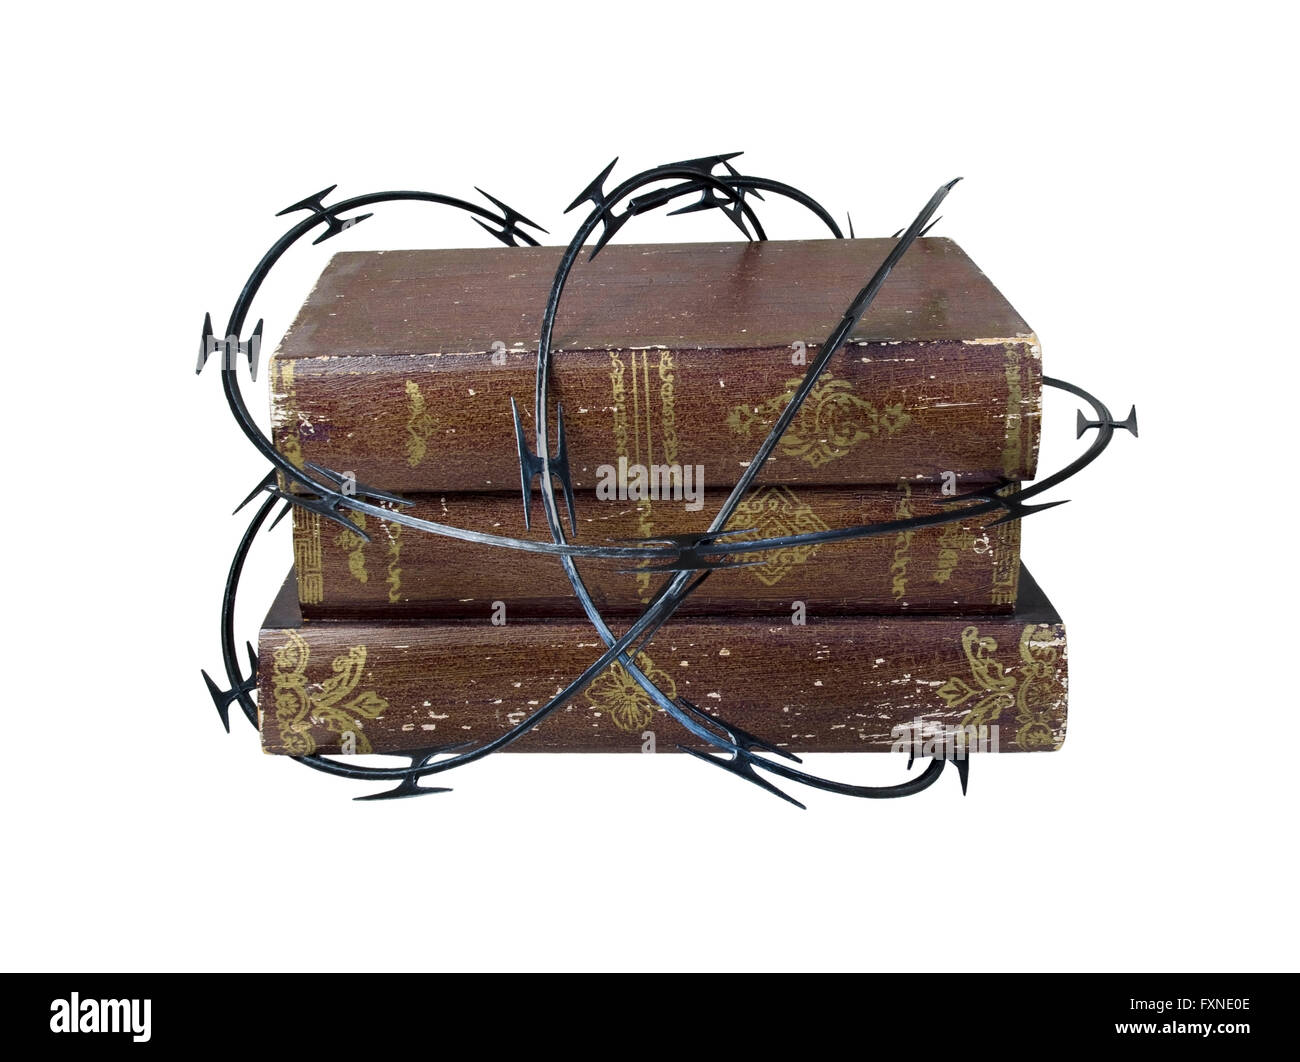 Sharp razor wired used as a barrier around old books Stock Photo